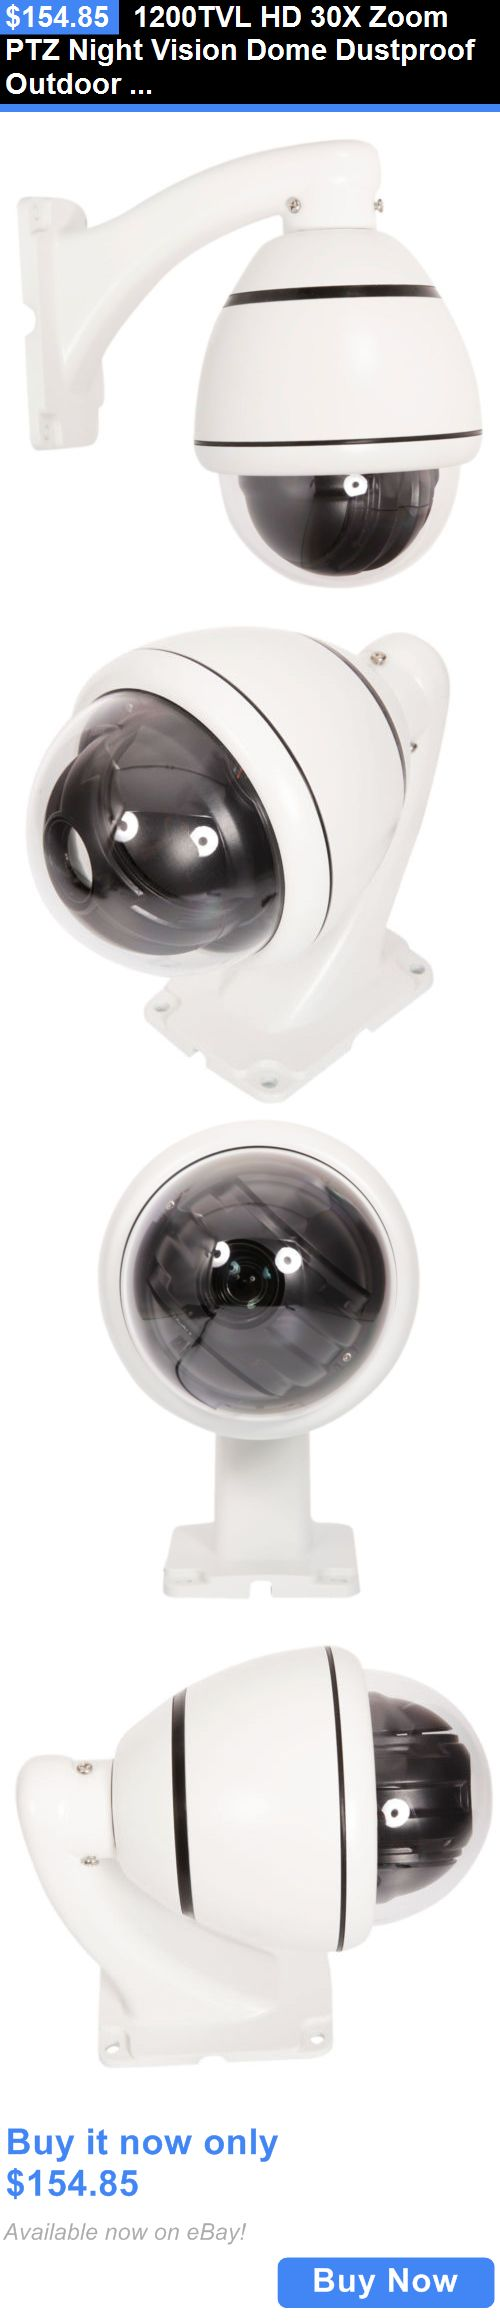 Security Cameras: 1200Tvl Hd 30X Zoom Ptz Night Vision Dome ...